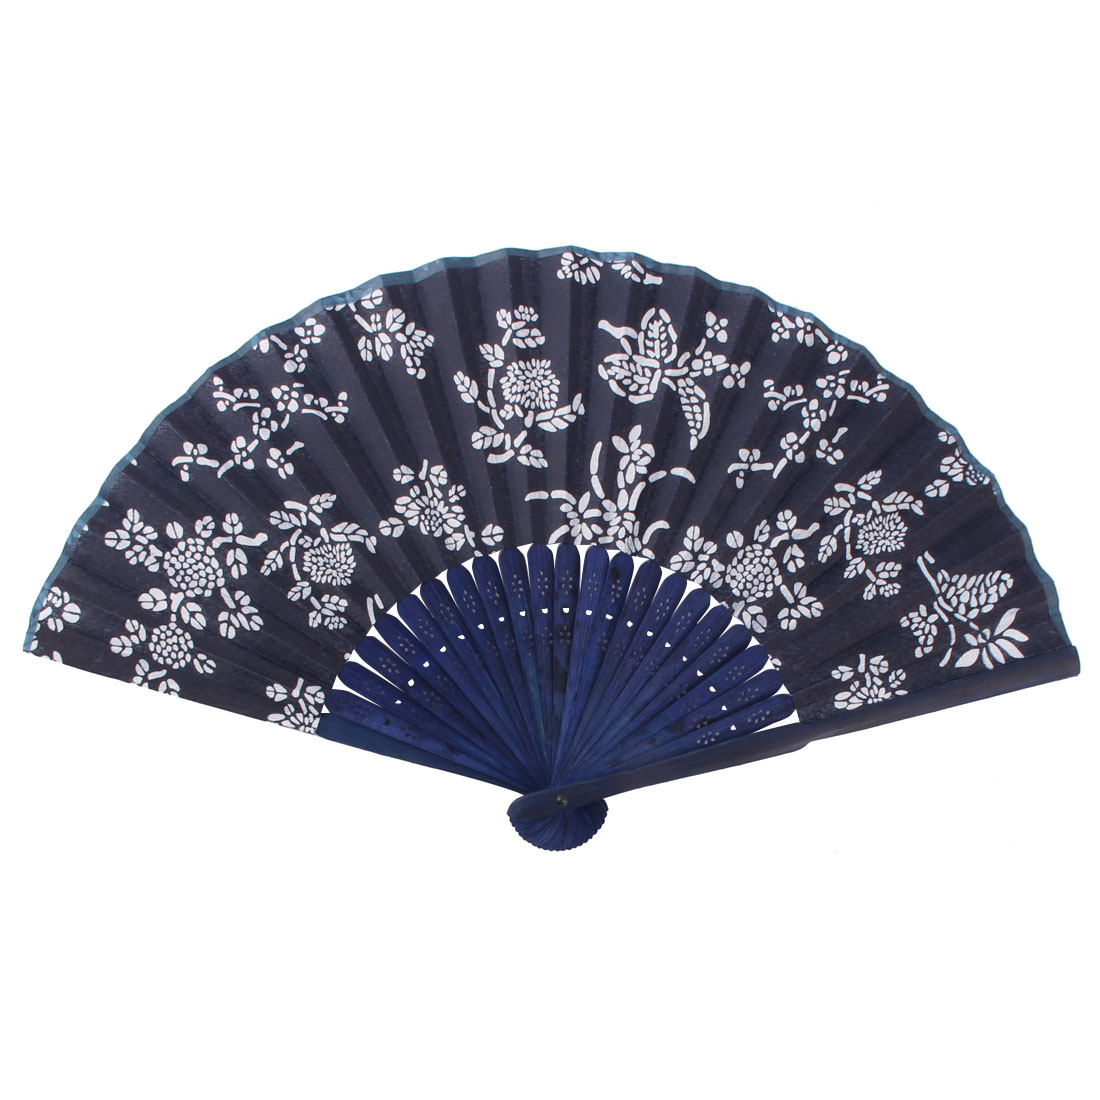 Dancing Wedding Party Bamboo Ribs Floral Printed Elegant Hand Folding Cooling Fan